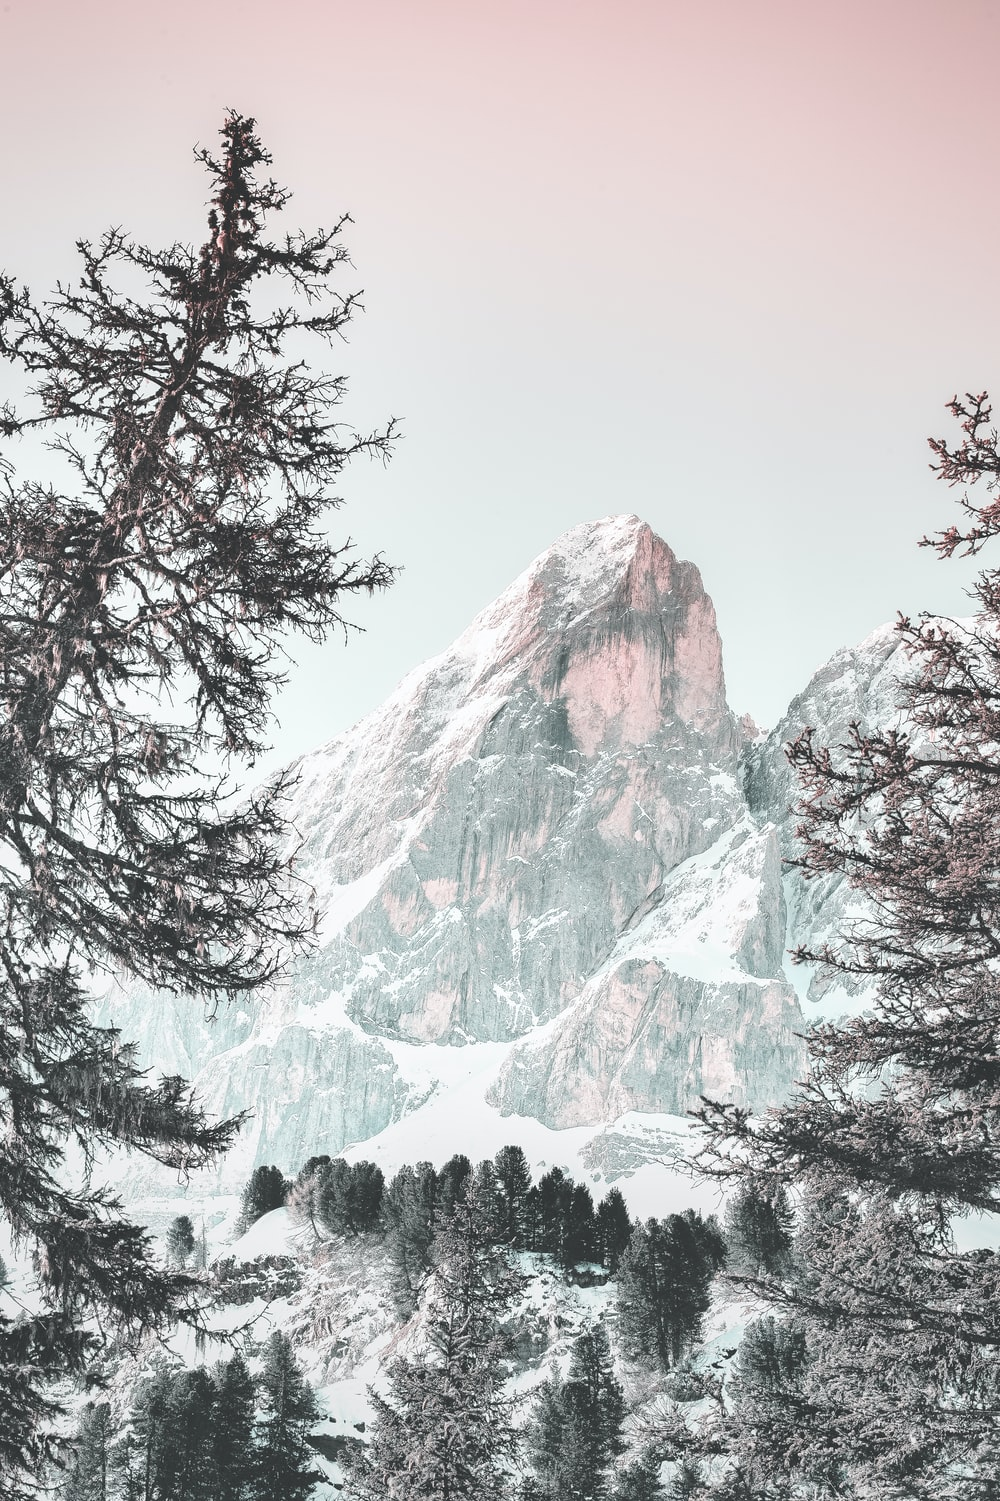 snowcaped mountain during daytime